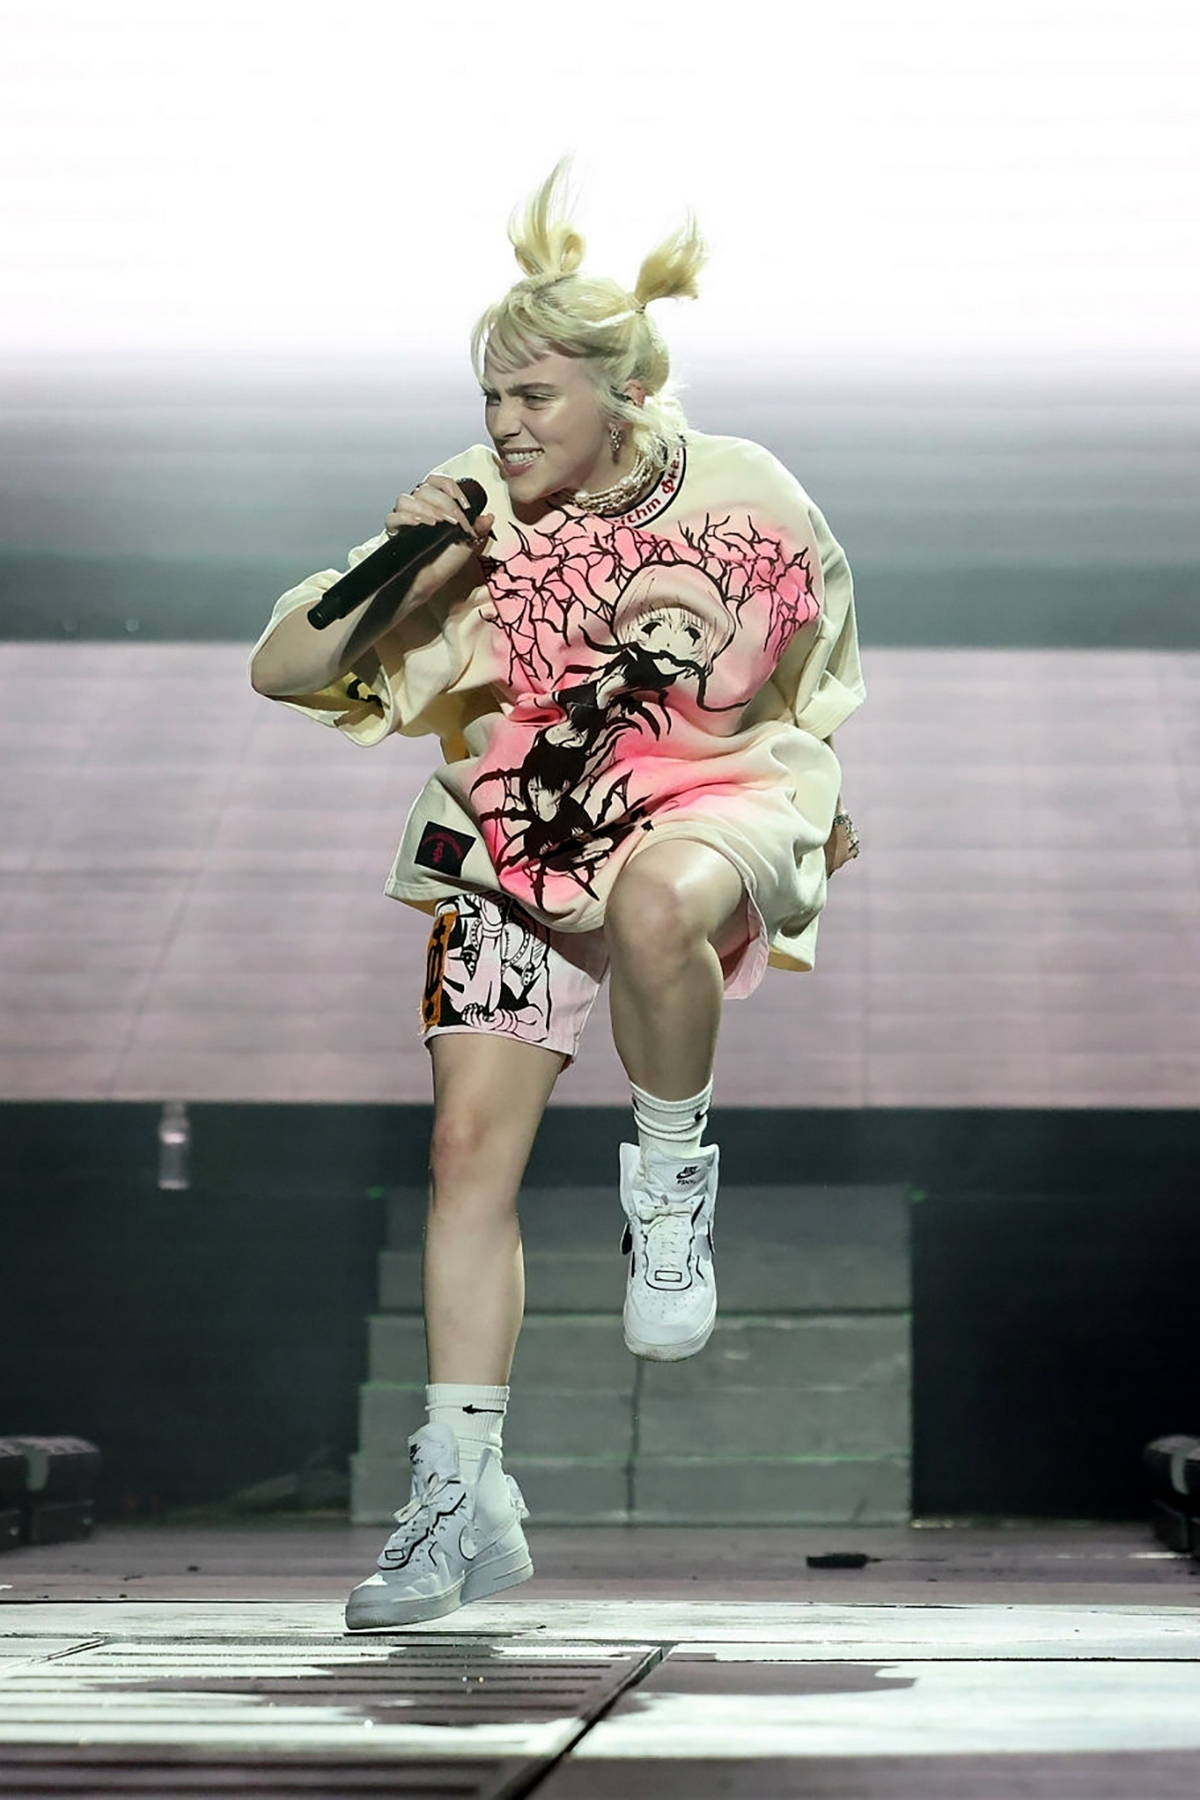 Billie Eilish performs during the 2021 Governors Ball Music Festival at Citi Field in New York City